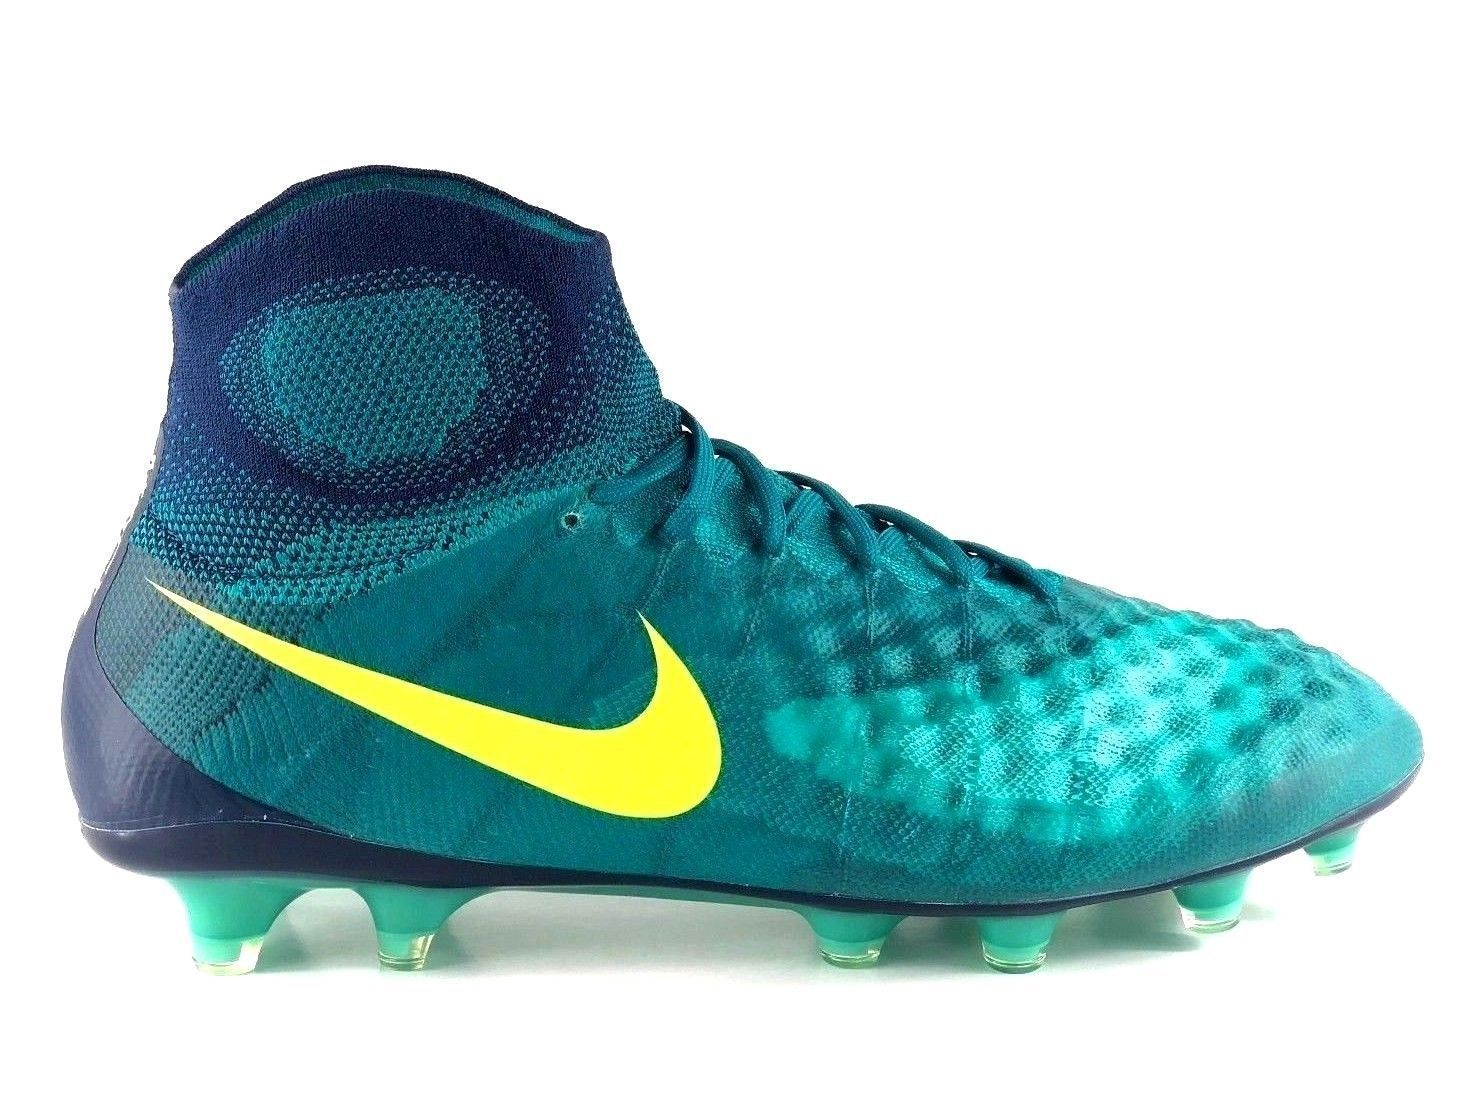 factory authentic 65209 8e4f9 57. 57. Previous. Nike Magista Obra II FG ACC Flood Light Green Firm Ground  Soccer Cleats Size 6